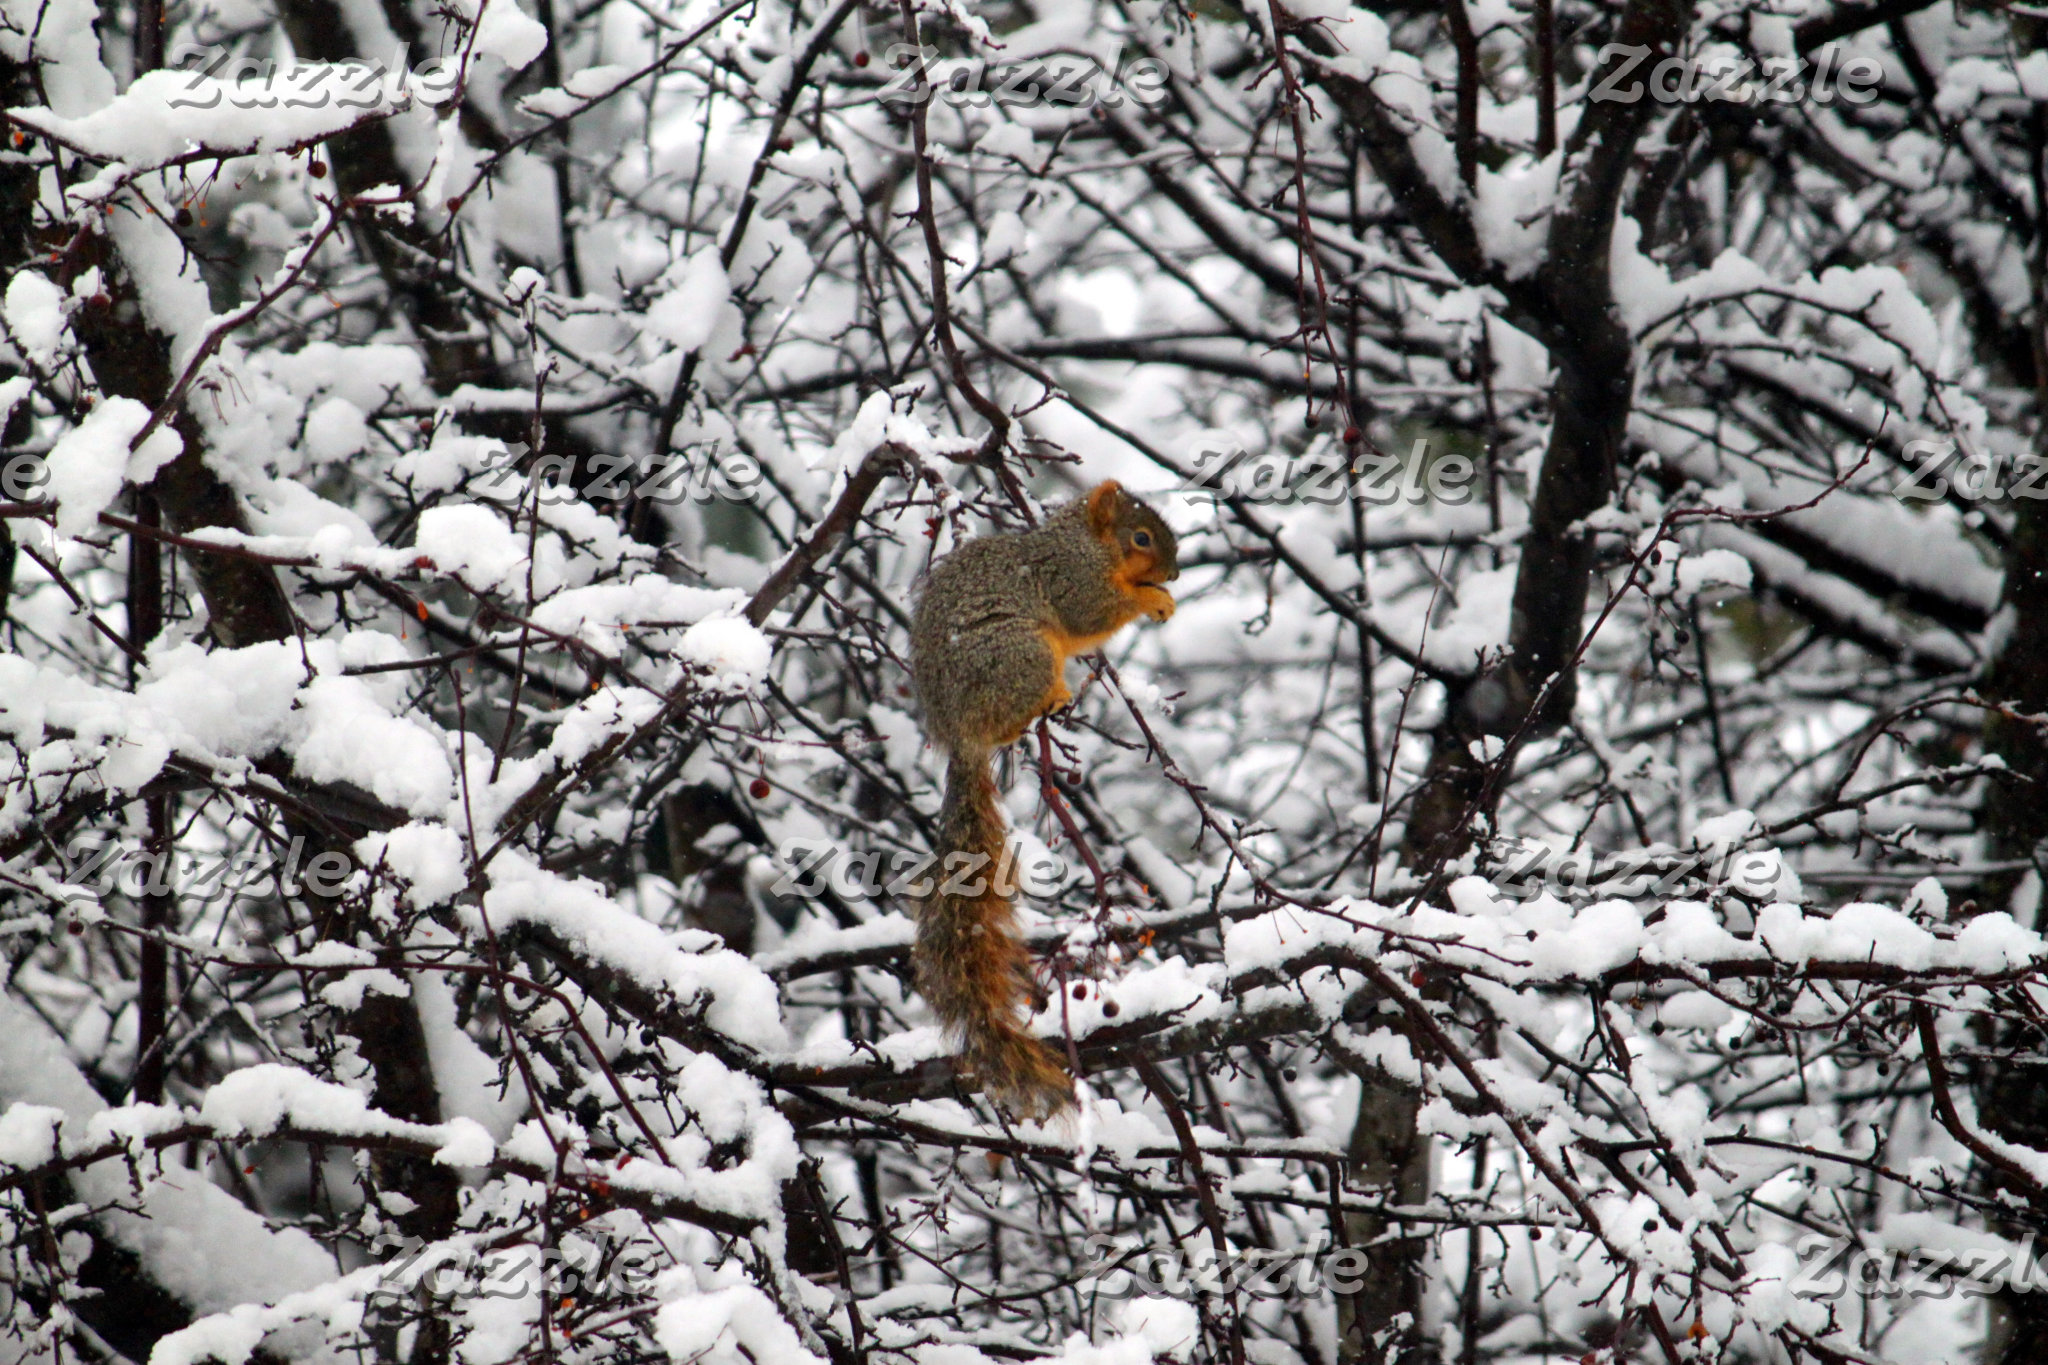 Squirrels in the Snow